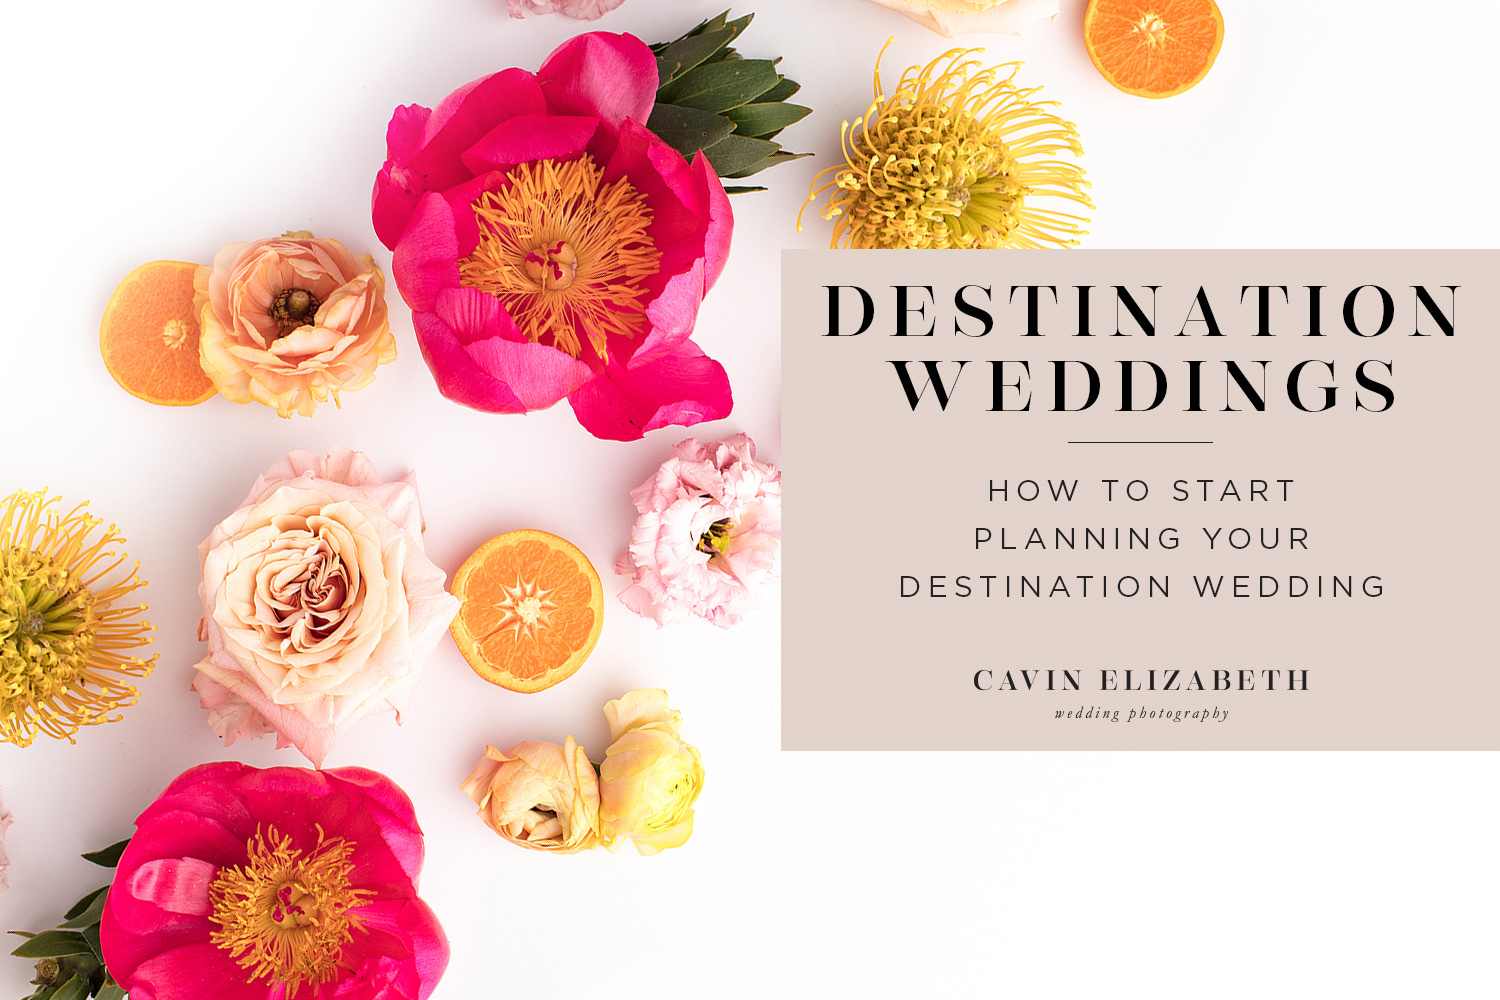 How to Plan a Destination Wedding That's Fun for You and Your Guests